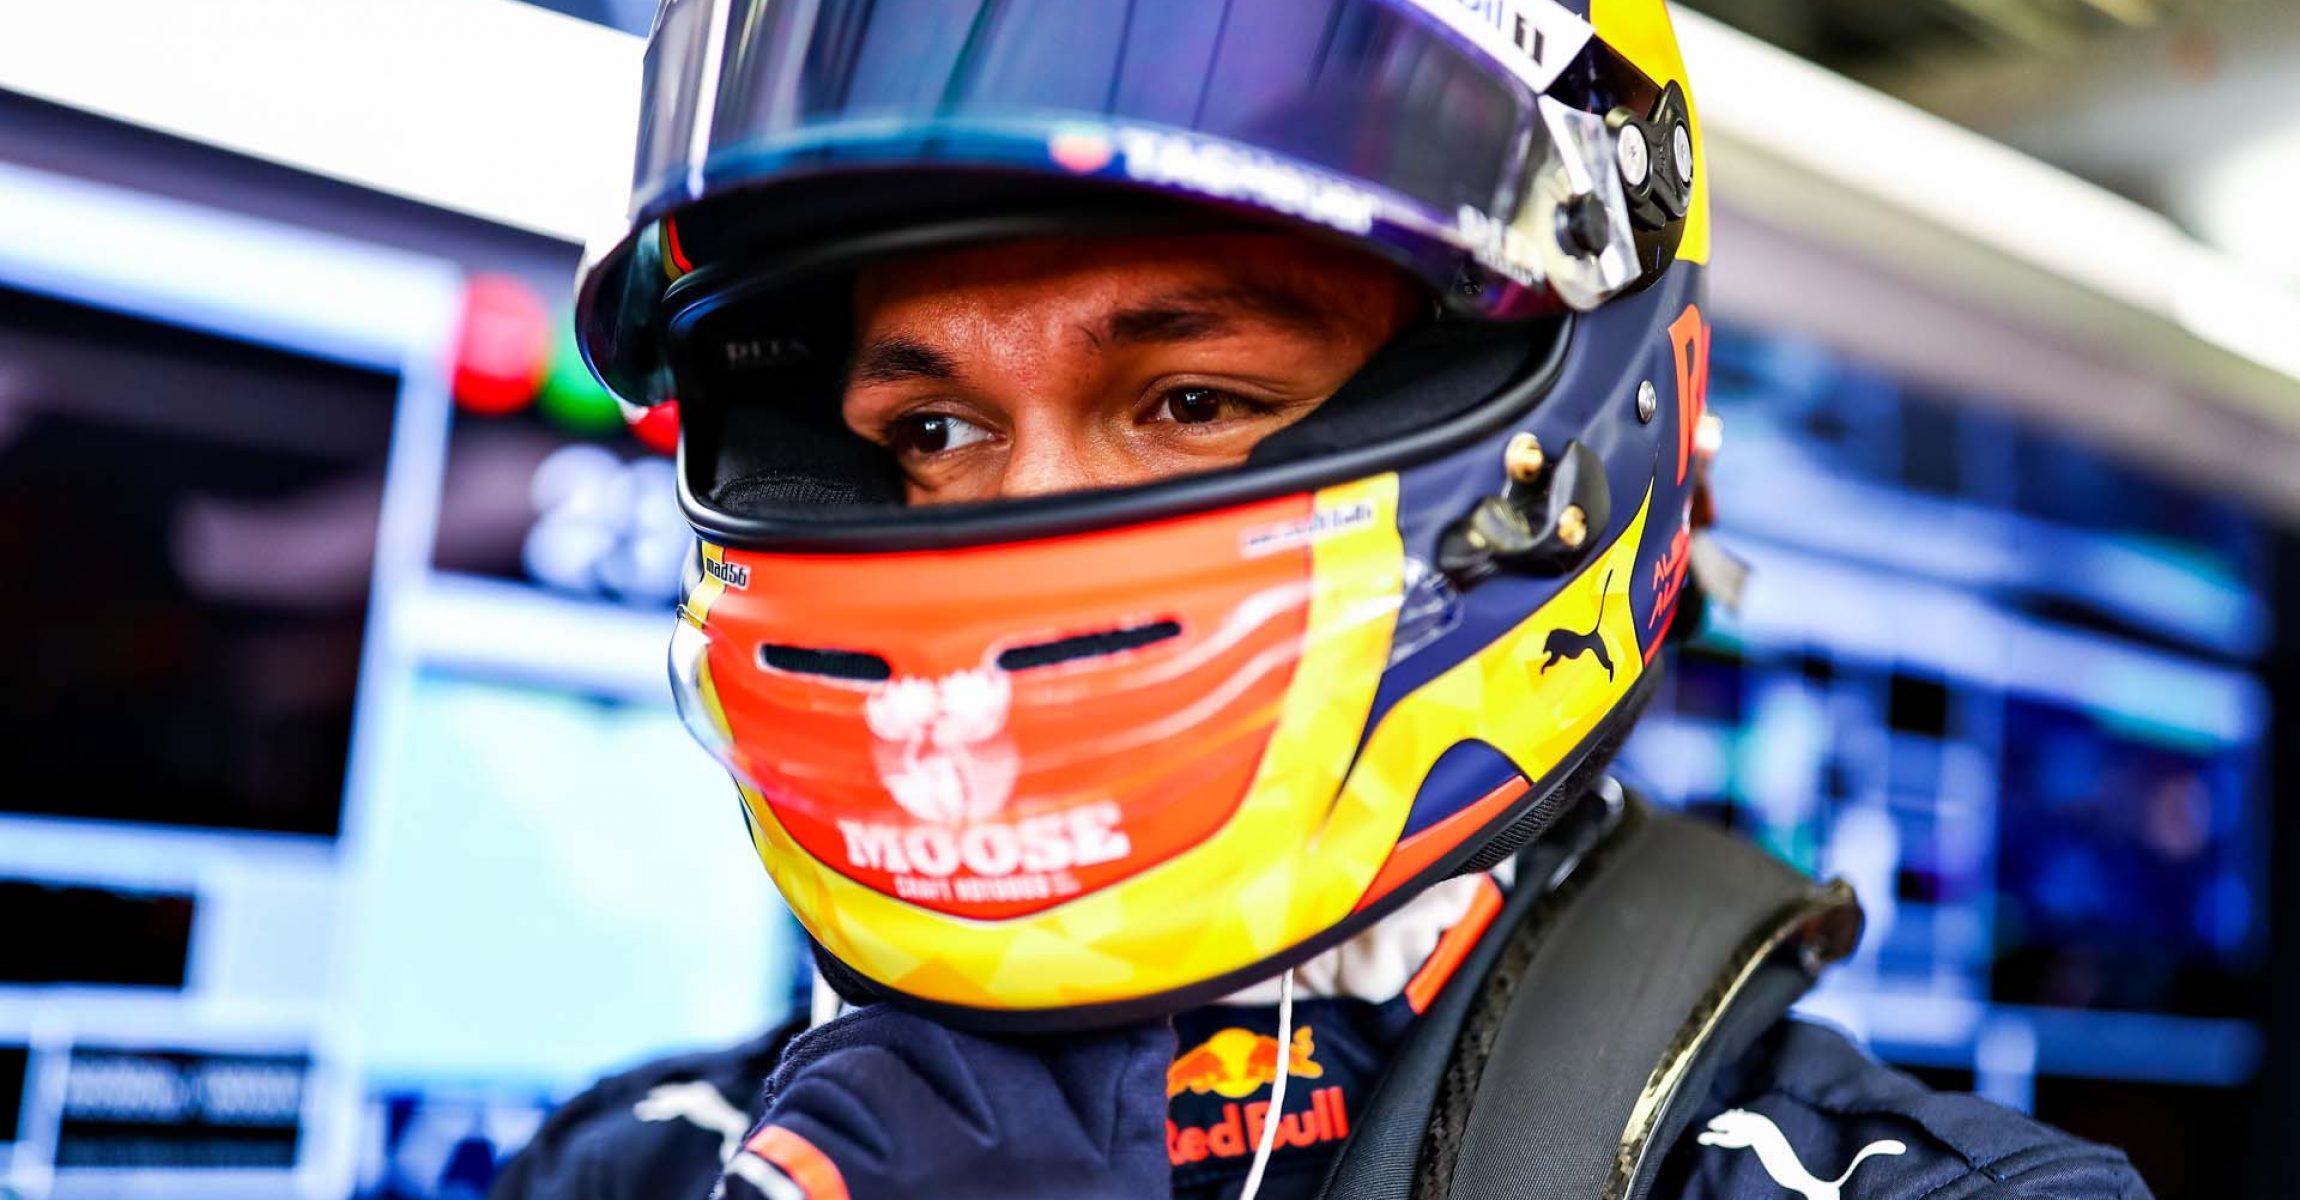 SOCHI, RUSSIA - SEPTEMBER 29: Alexander Albon of Thailand and Red Bull Racing prepares to drive in the garage before the F1 Grand Prix of Russia at Sochi Autodrom on September 29, 2019 in Sochi, Russia. (Photo by Mark Thompson/Getty Images) // Getty Images / Red Bull Content Pool // AP-21QJAZ7UW1W11 // Usage for editorial use only //